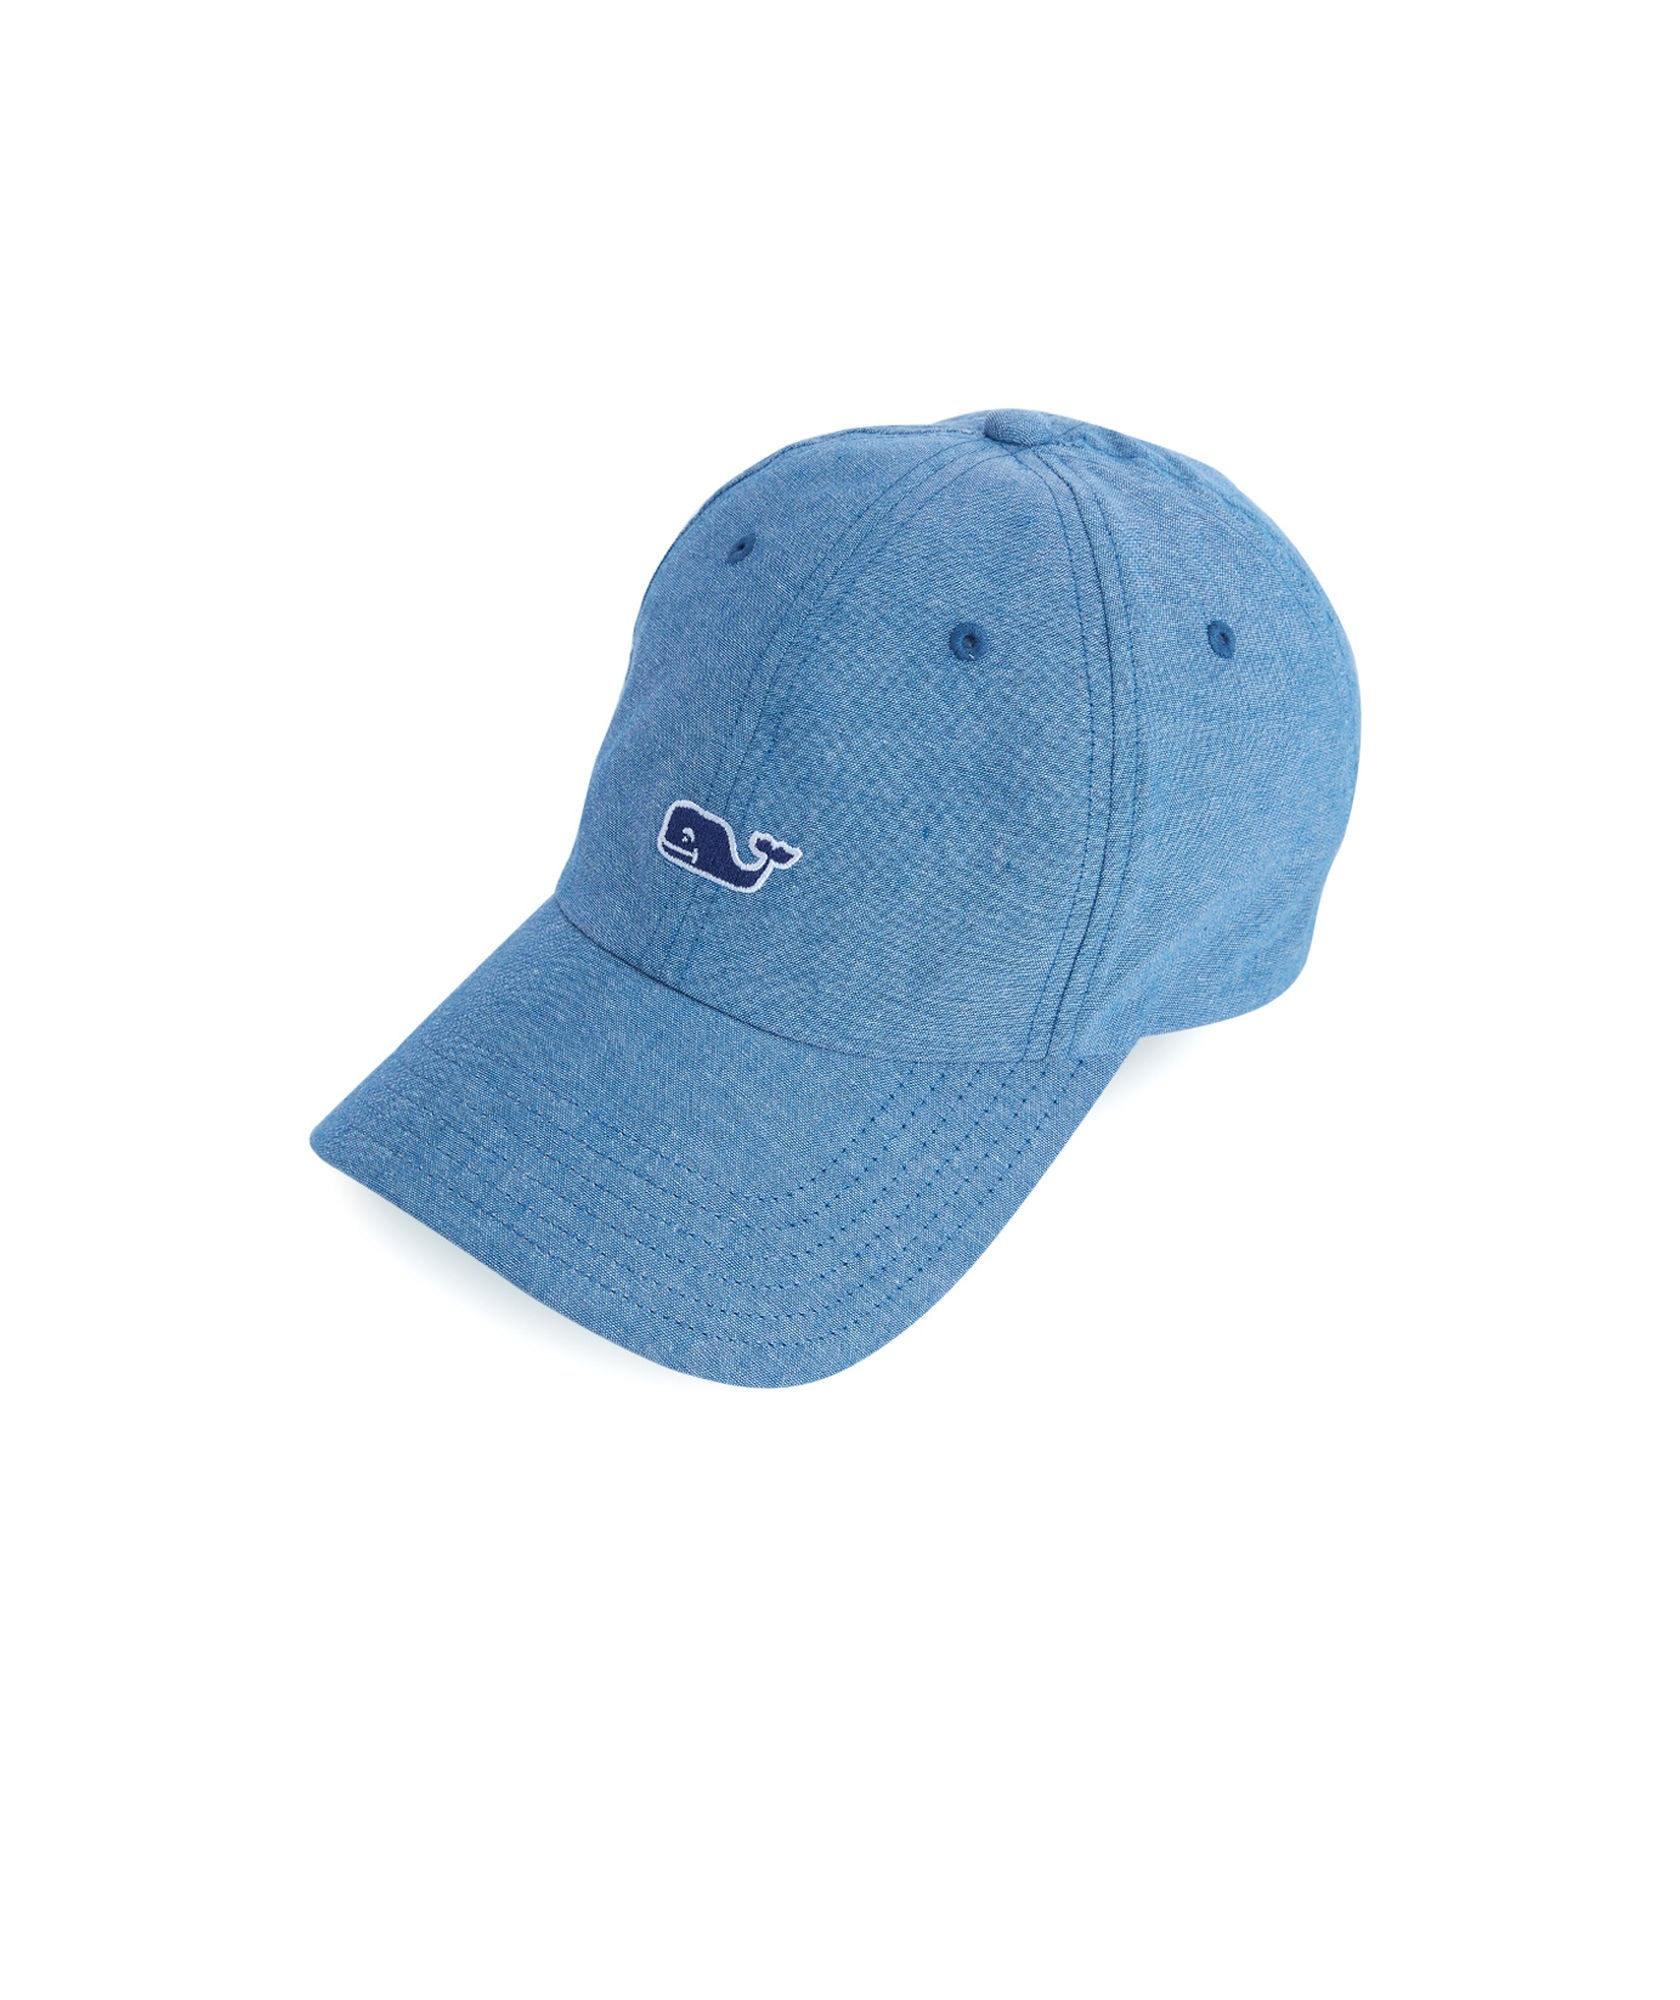 Vineyard Vines Linen Chambray Baseball Hat - Moonshine Front View